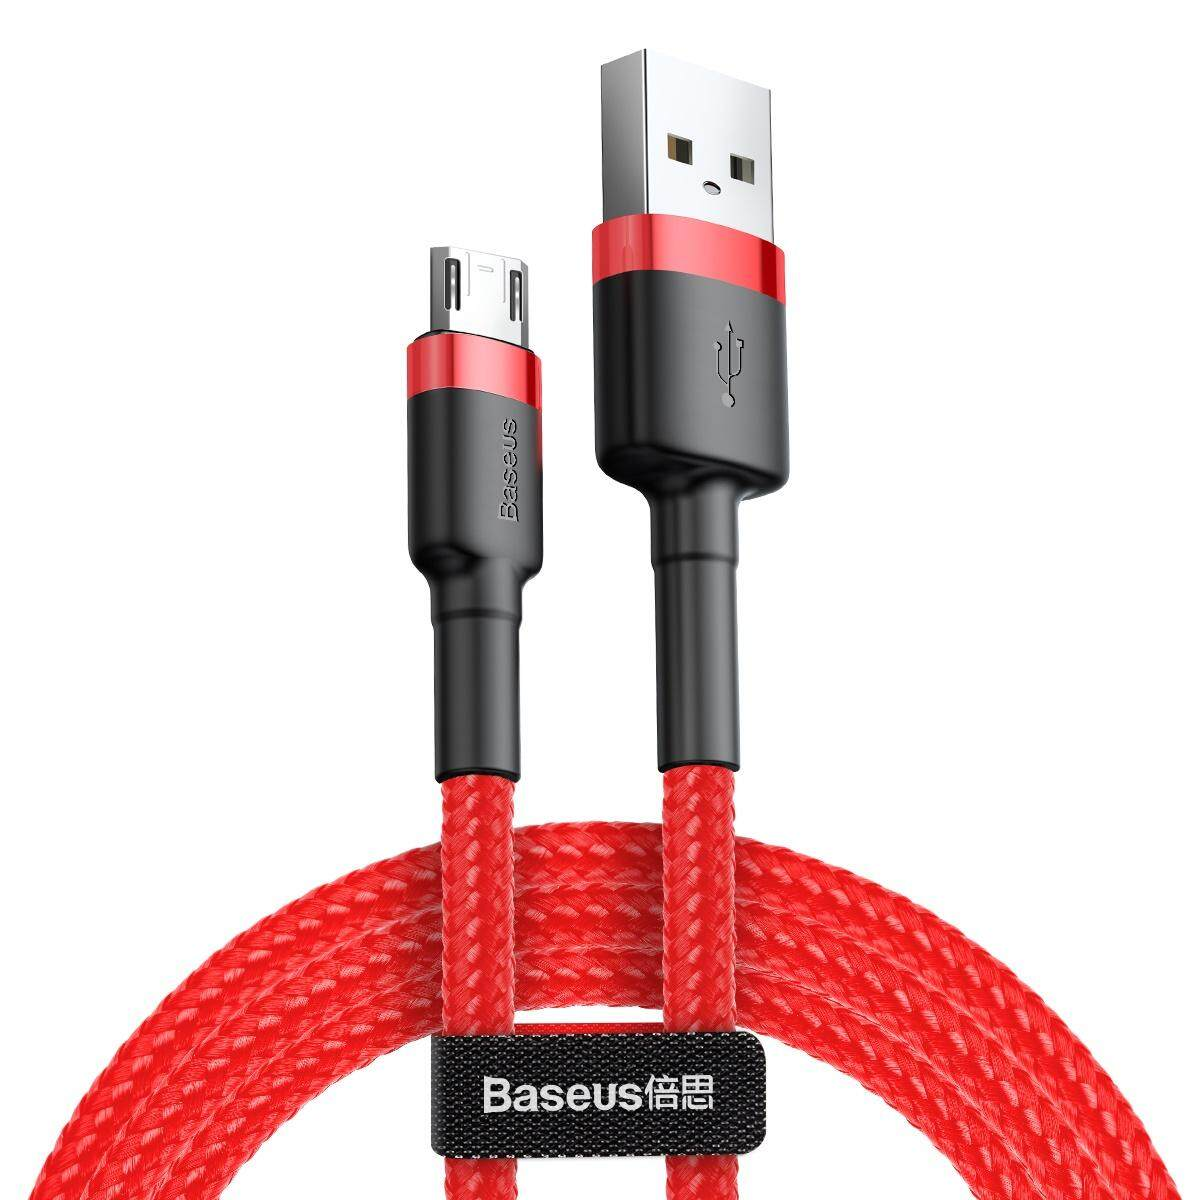 View Product · Baseus Classic USB Cable Android Micro 5 PIN Charger Data Cable 2.4A USB Charging Cable